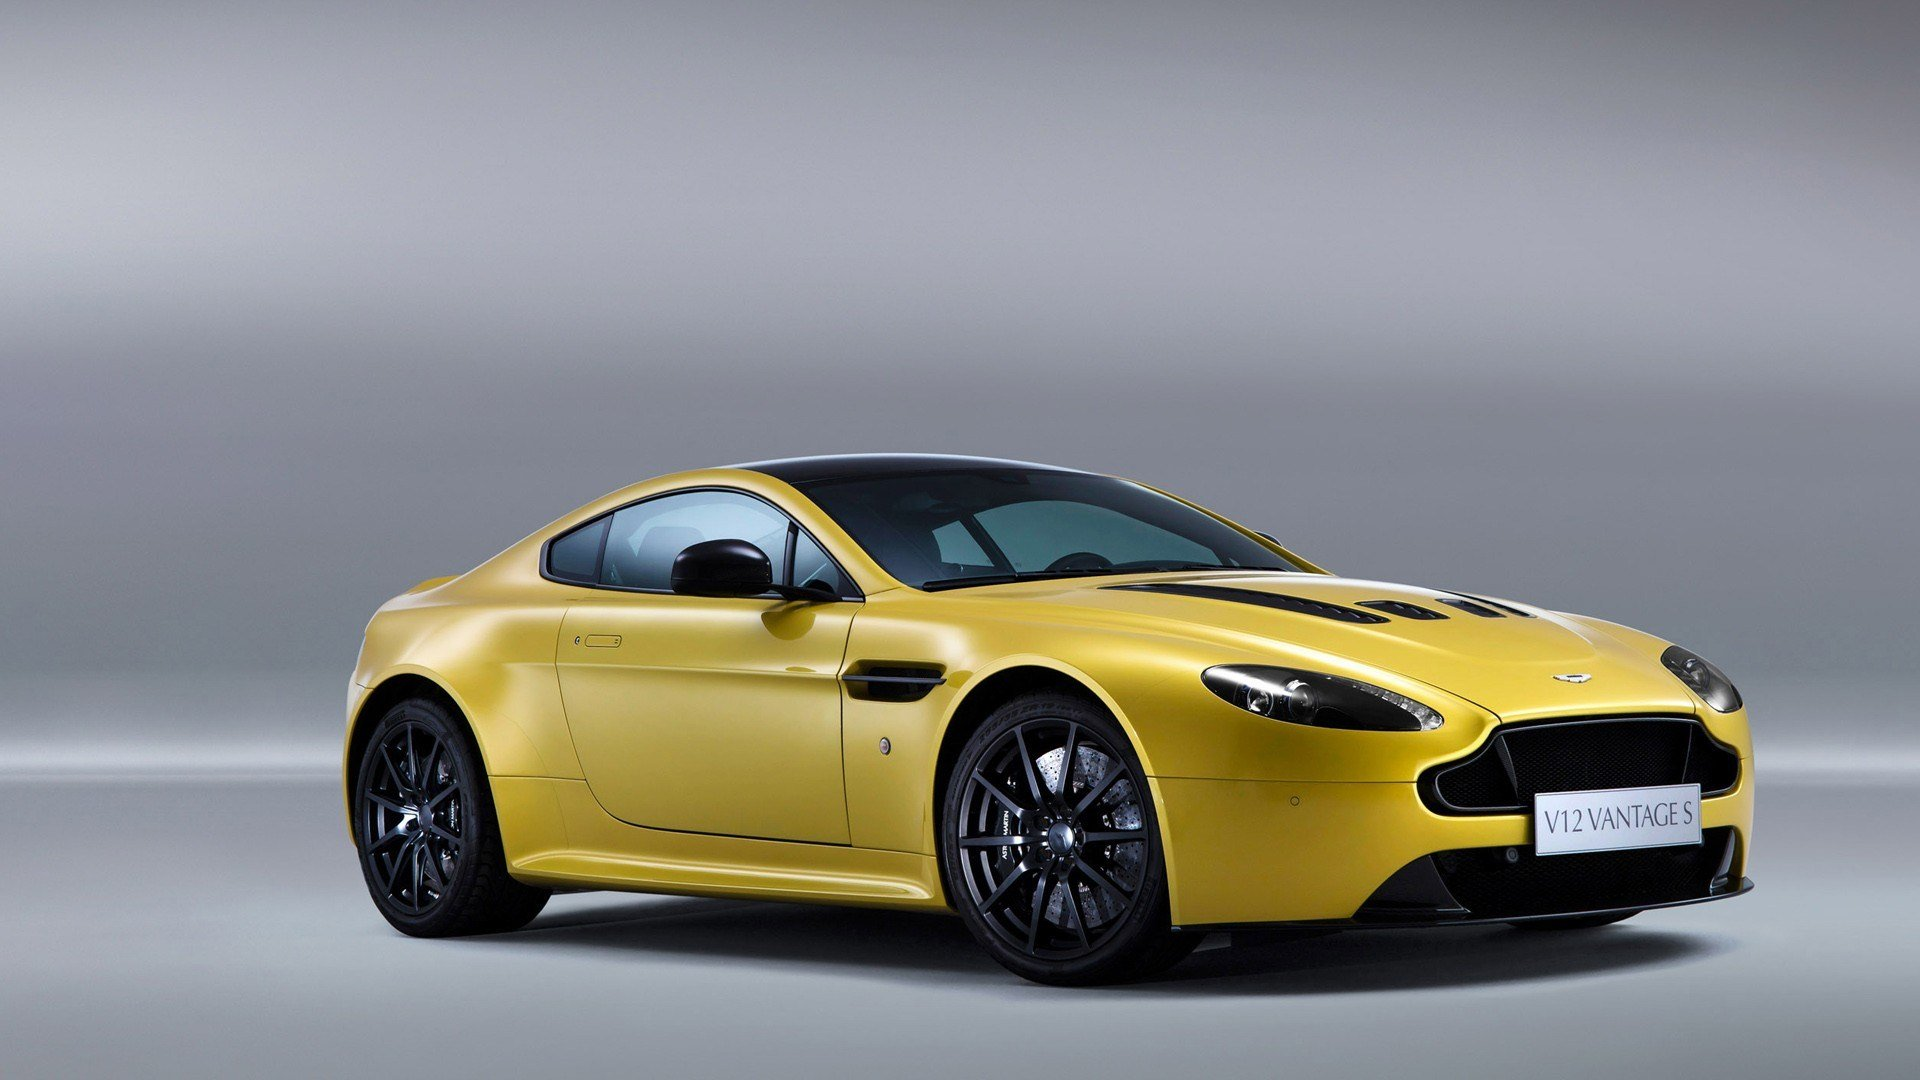 Latest Aston Martin V12 Vantage S 2014 Wallpaper Hd Car Free Download